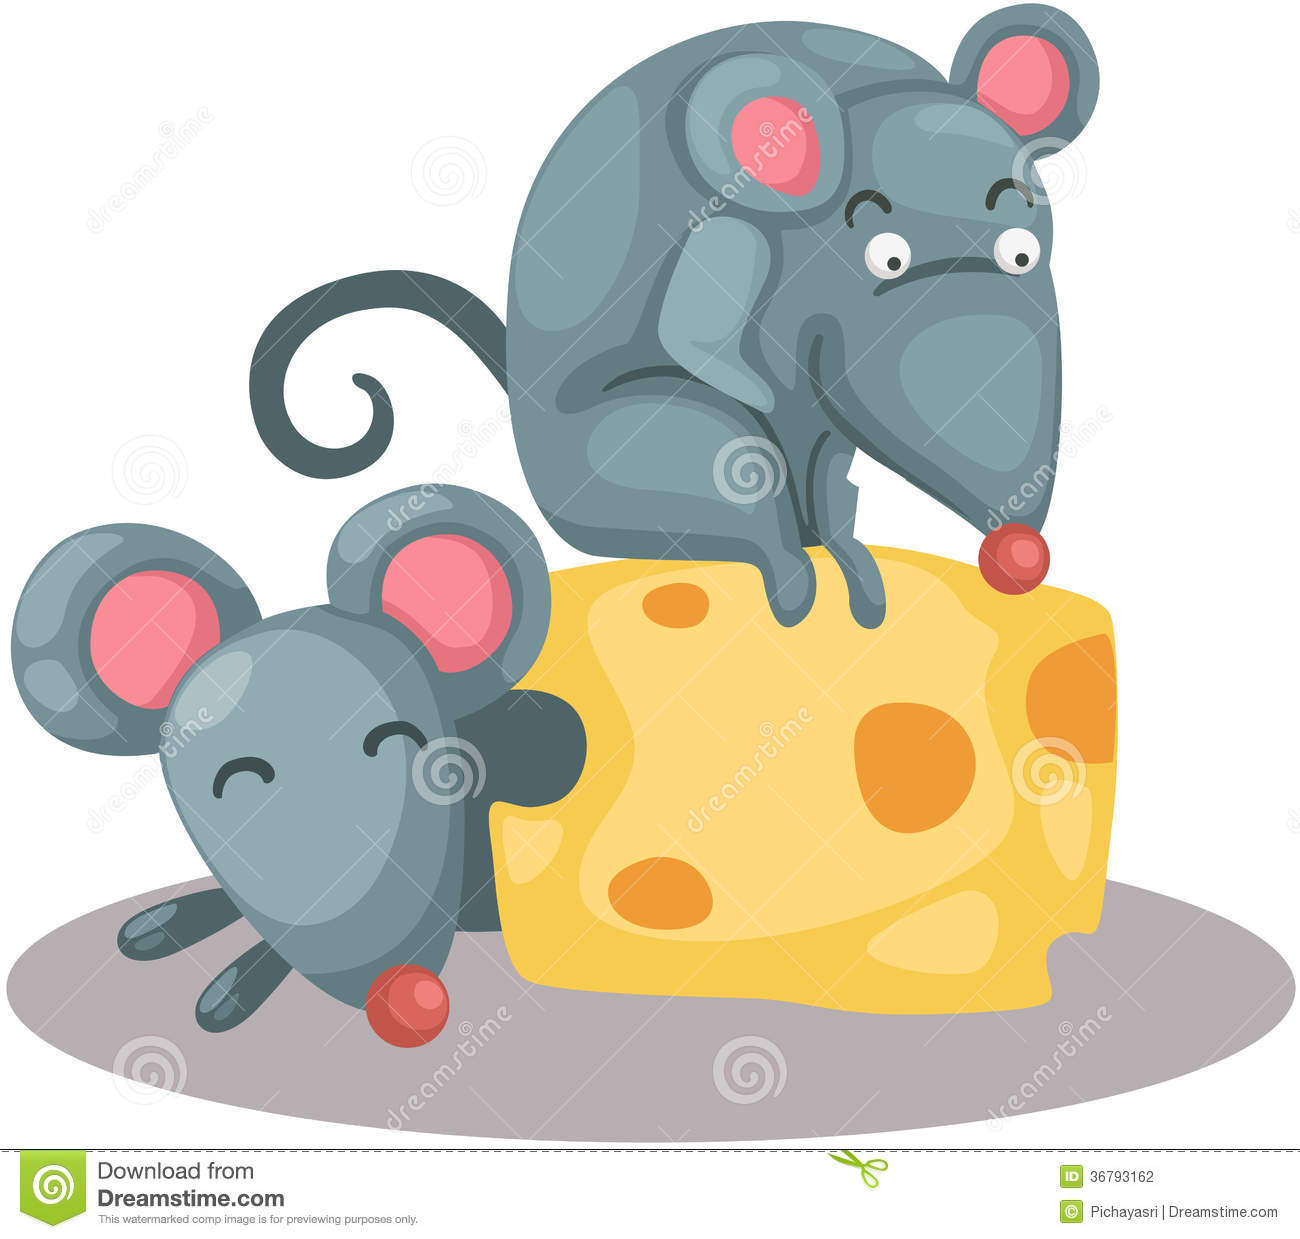 Cheese clipart illustration. Eats pencil and in